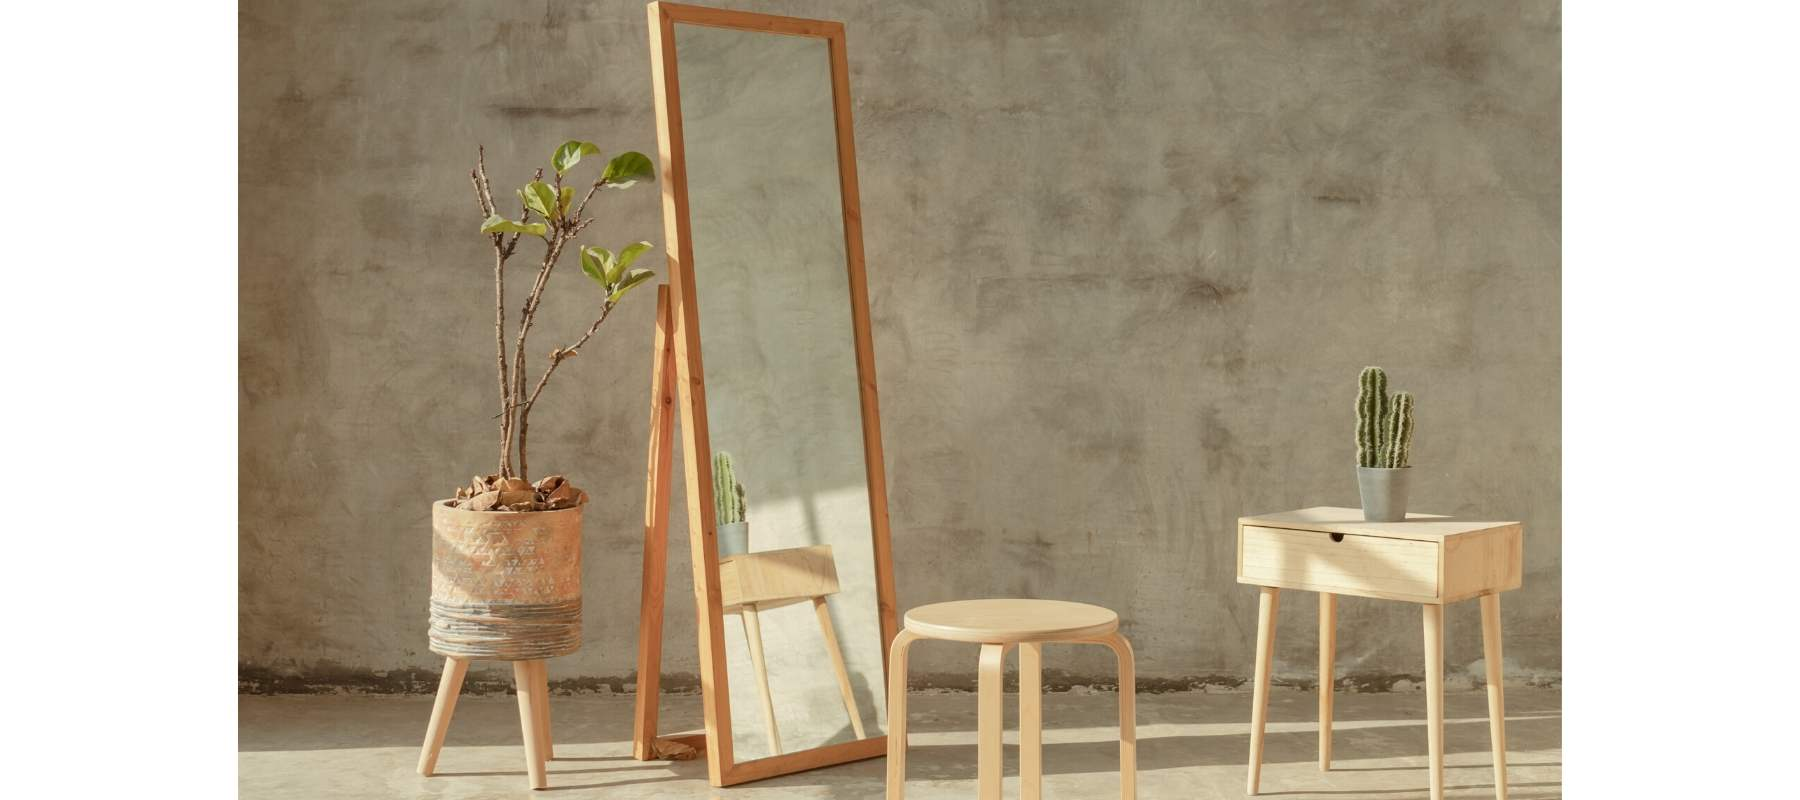 Large wooden floor standing mirror with stool and side table